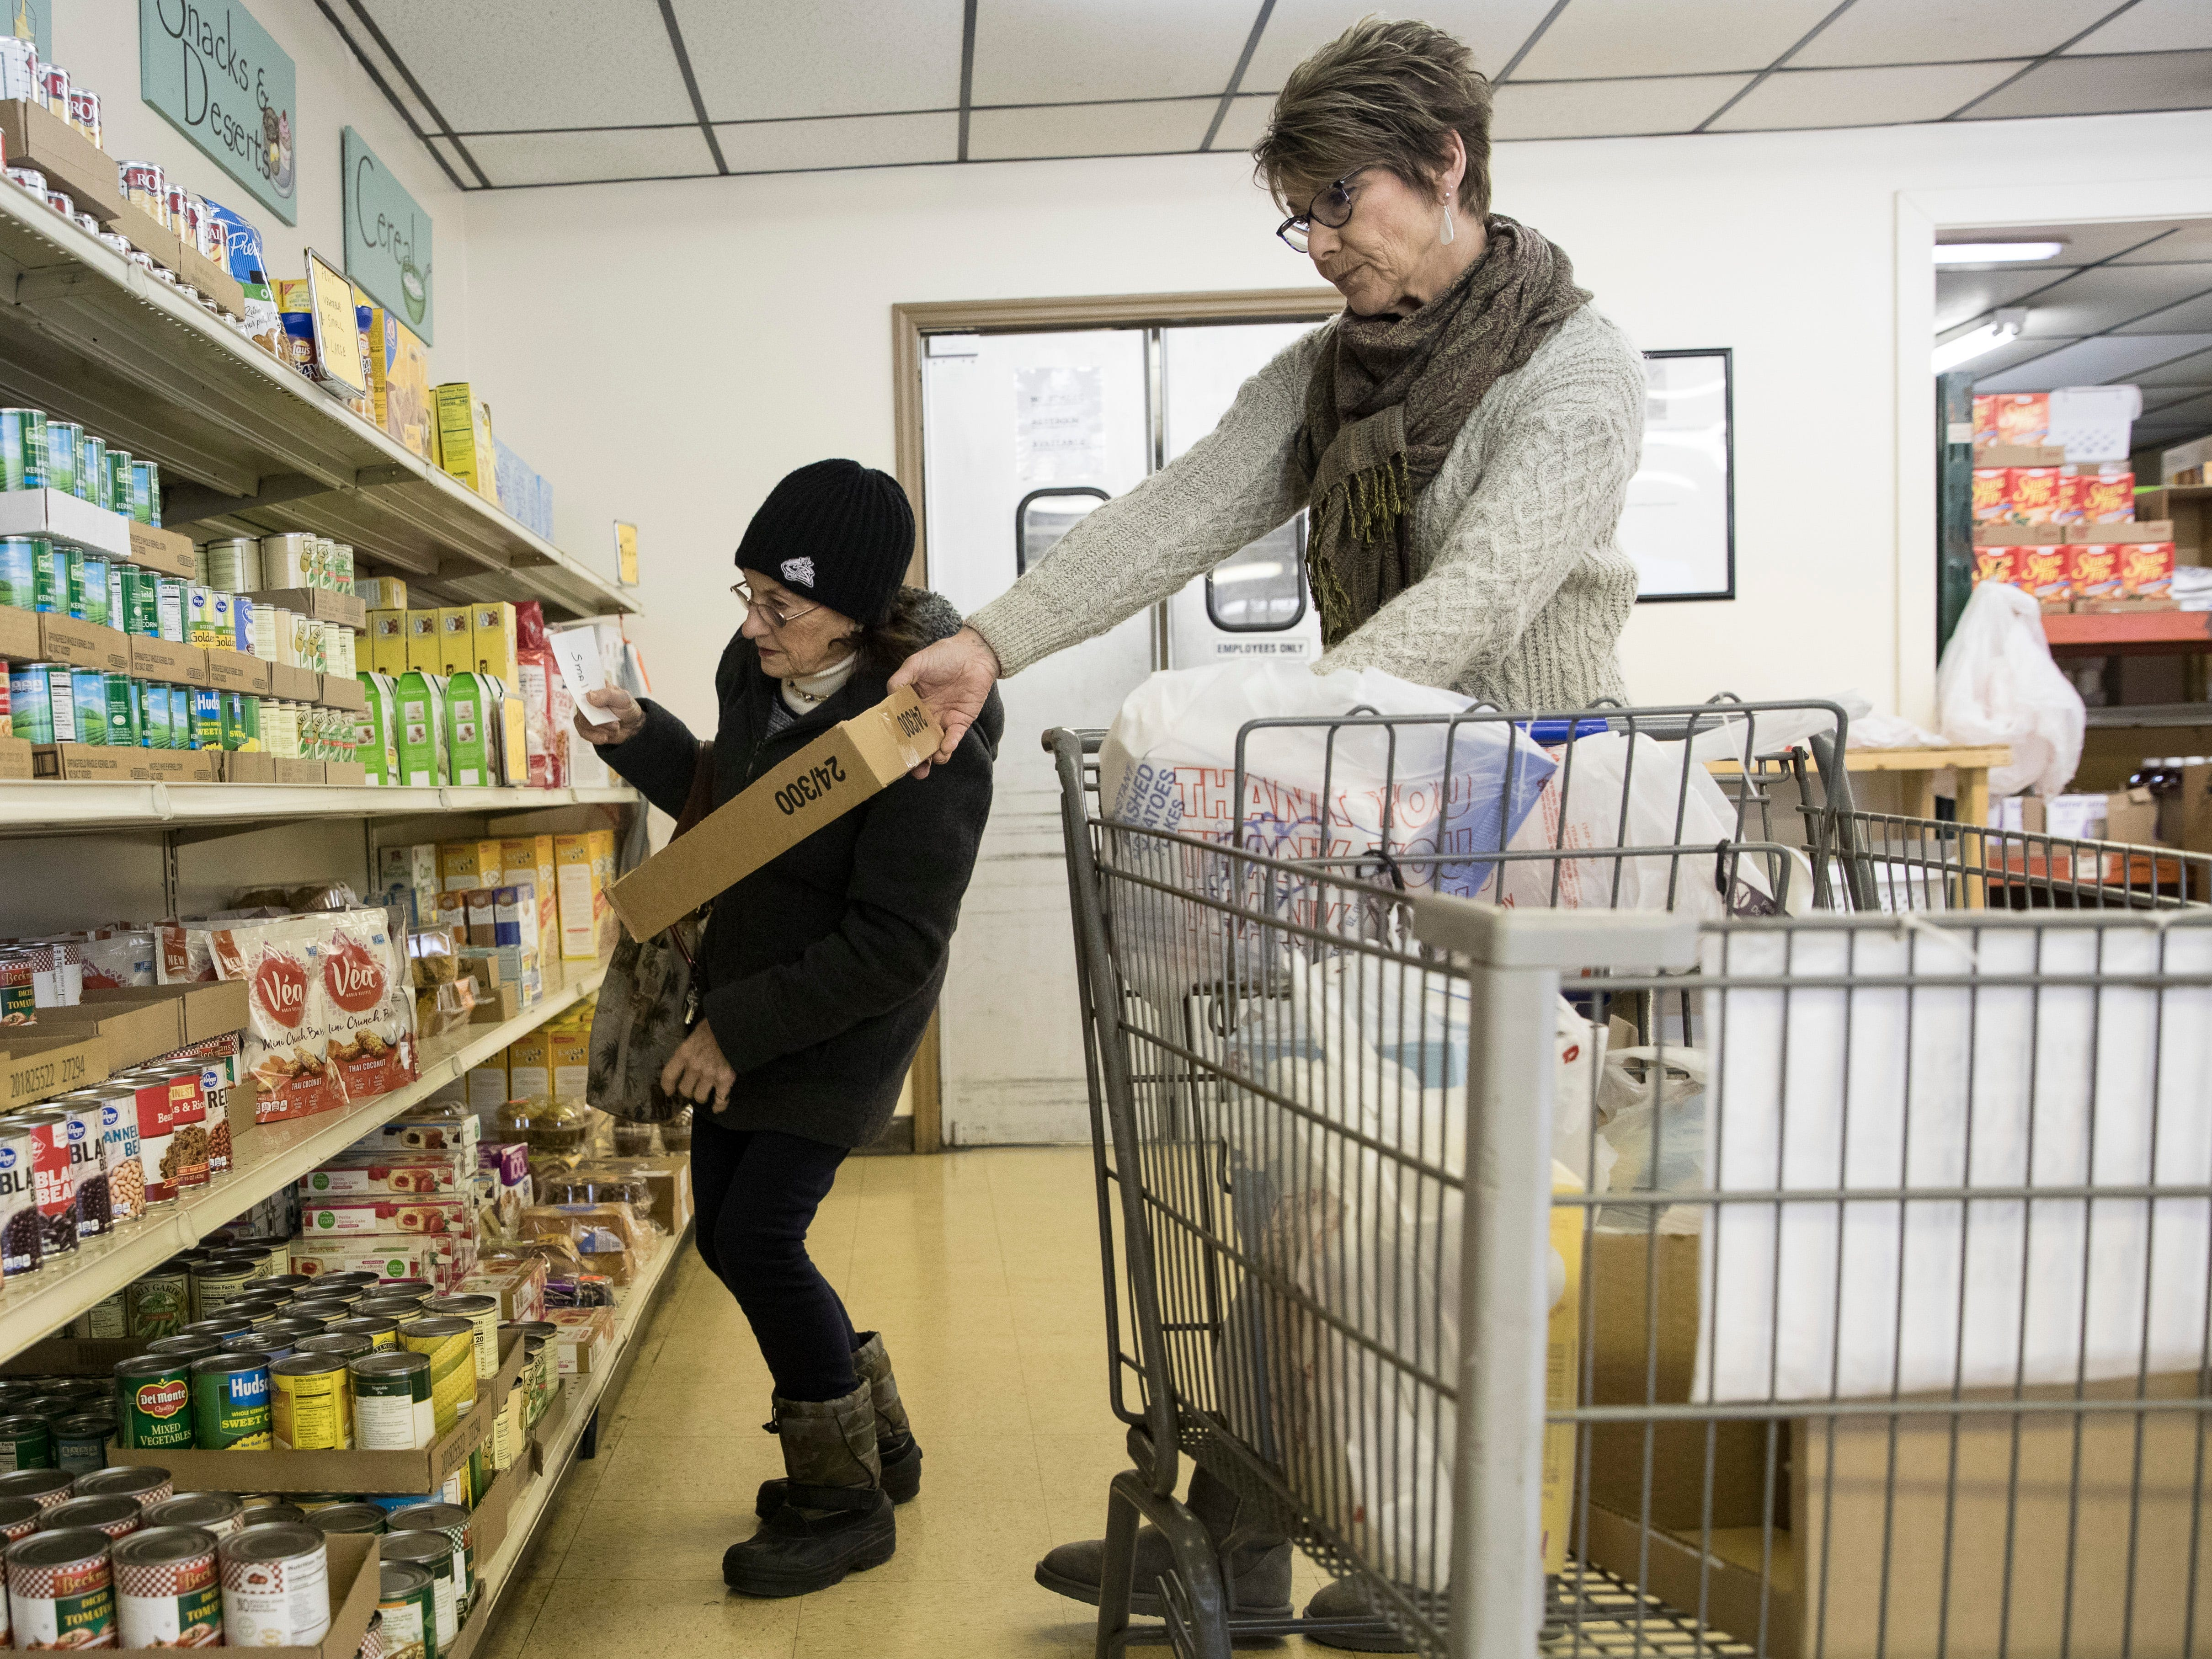 """Chillicothe native Edie Adkins, left, gets help shopping from Good Samaritan Food Pantry volunteer Denise Litter, a volunteer at the pantry for over four years on December 10, 2018, in Chillicothe, Ohio. """"I like coming here,"""" said Adkins. """"It's very helpful and lets me keep more money to spend on my bills."""""""